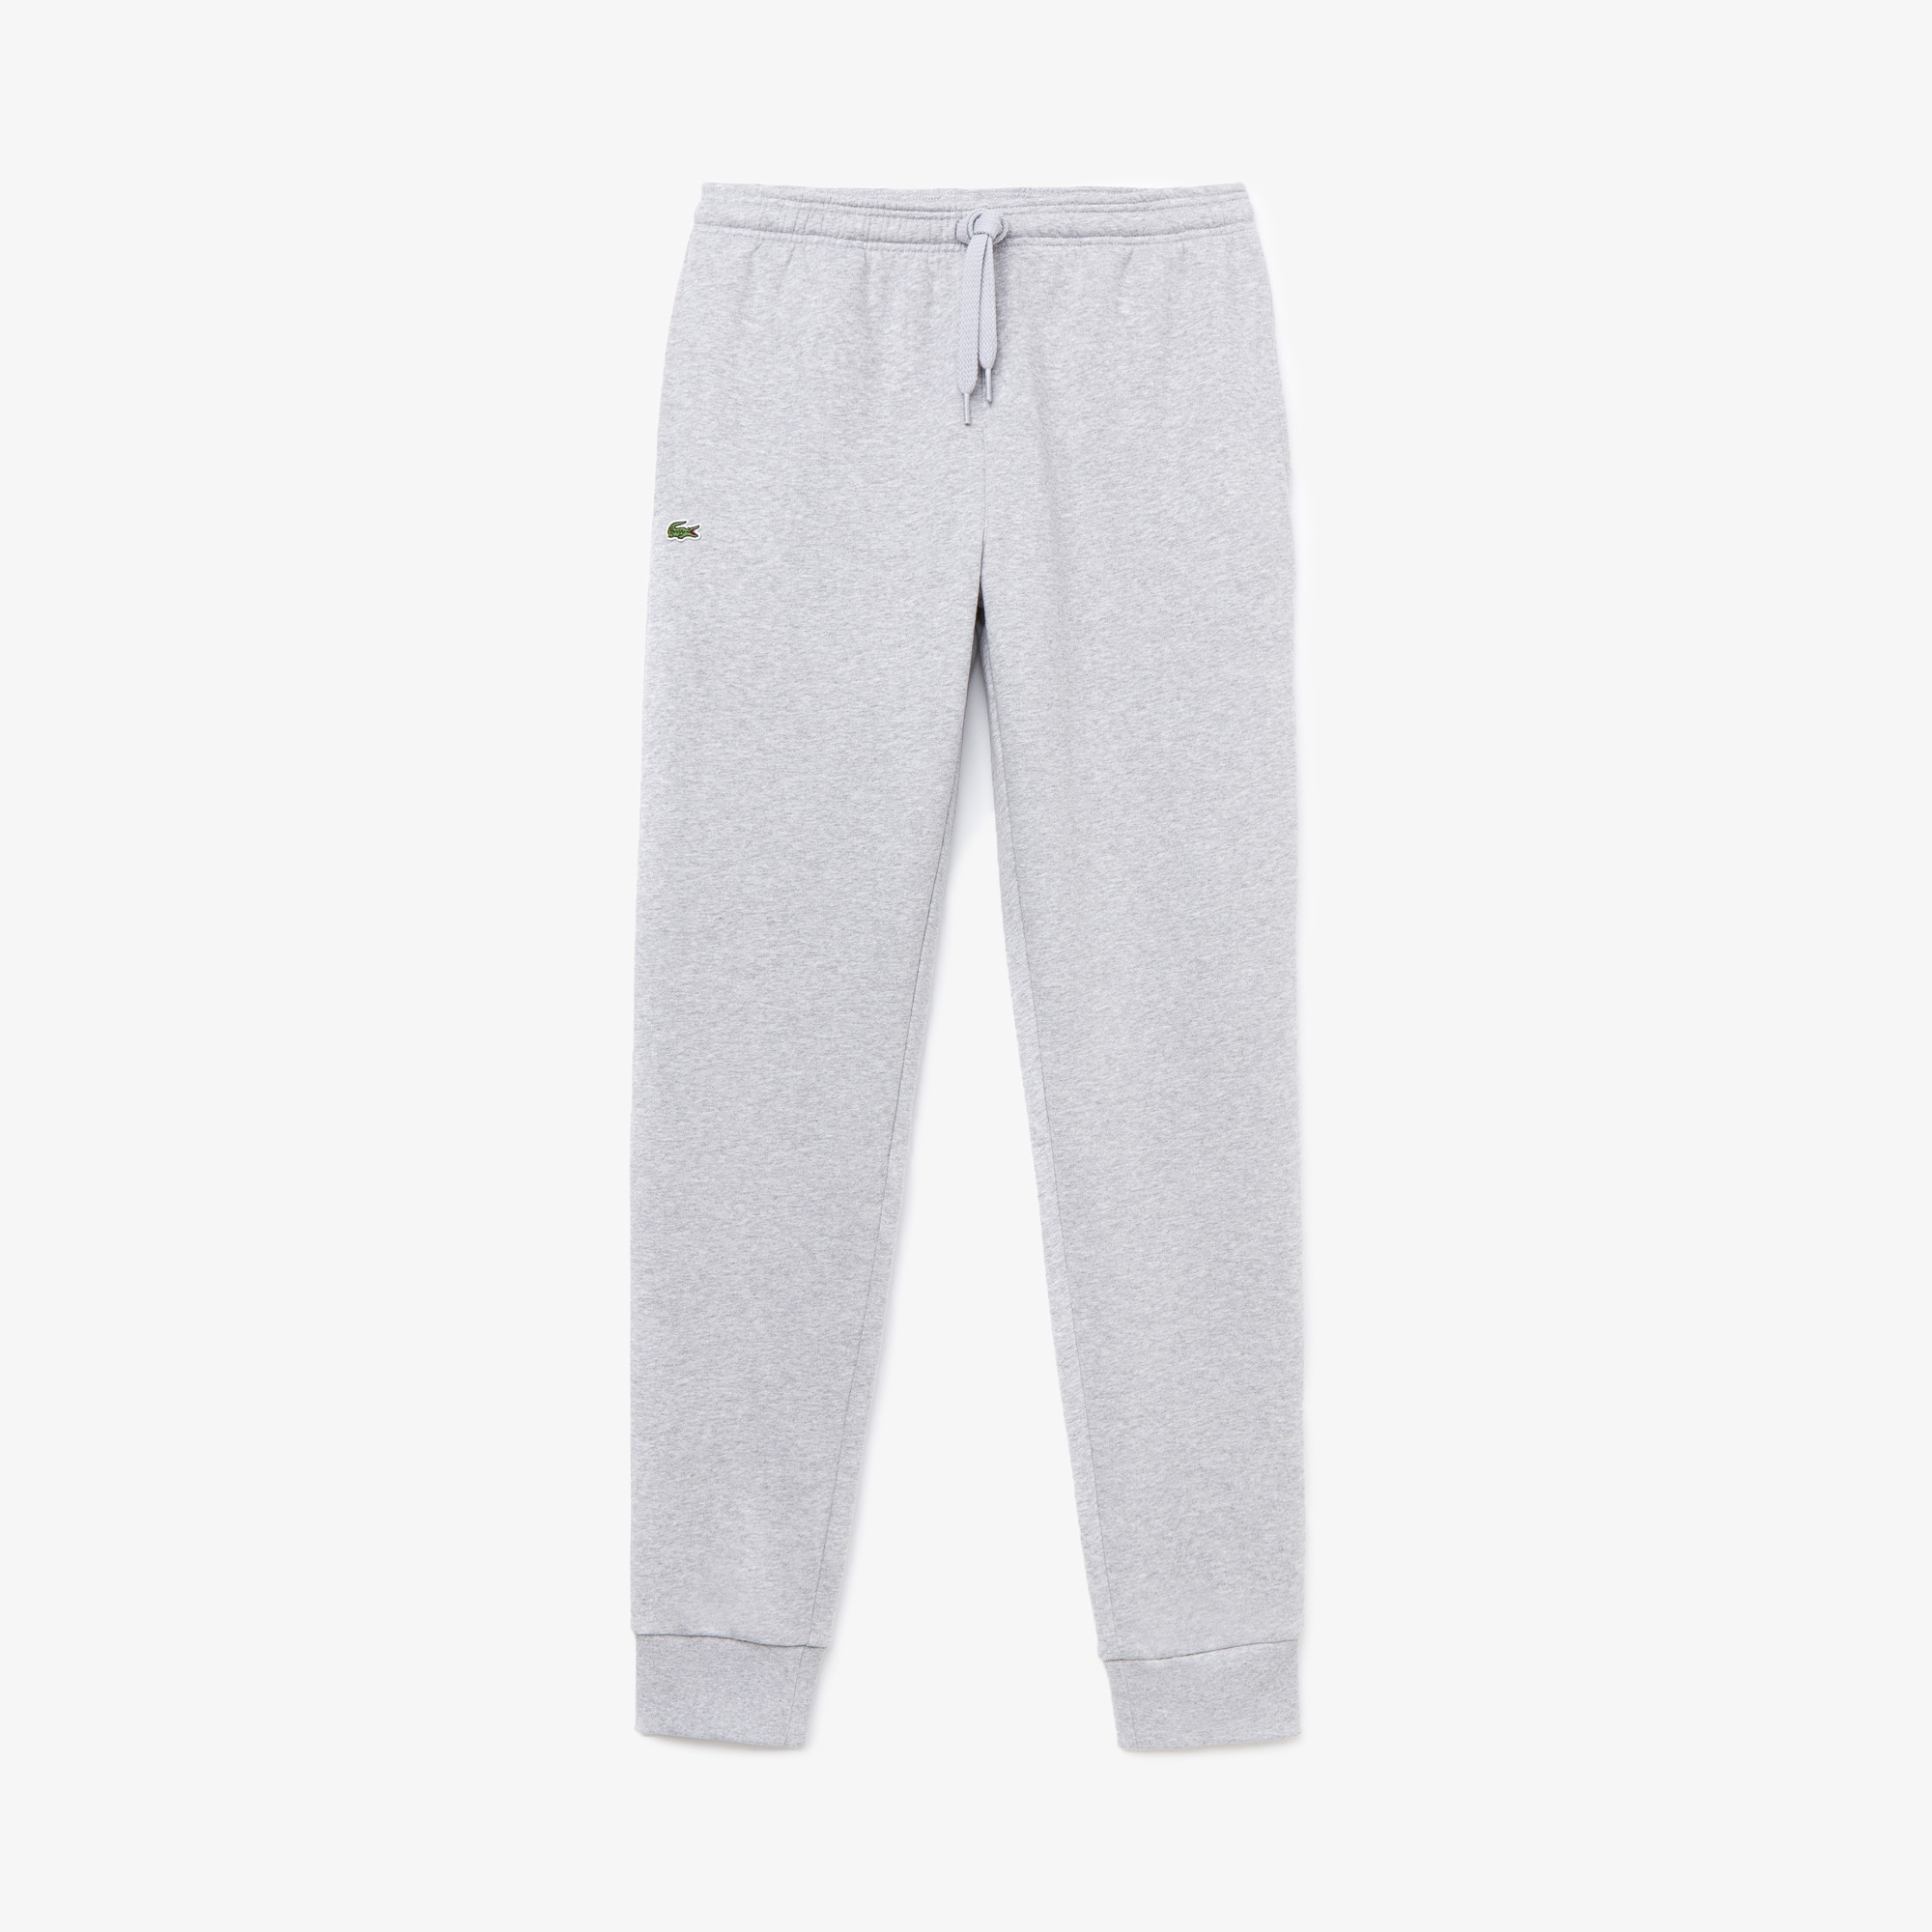 Men's SPORT Fleece Tennis Sweatpants